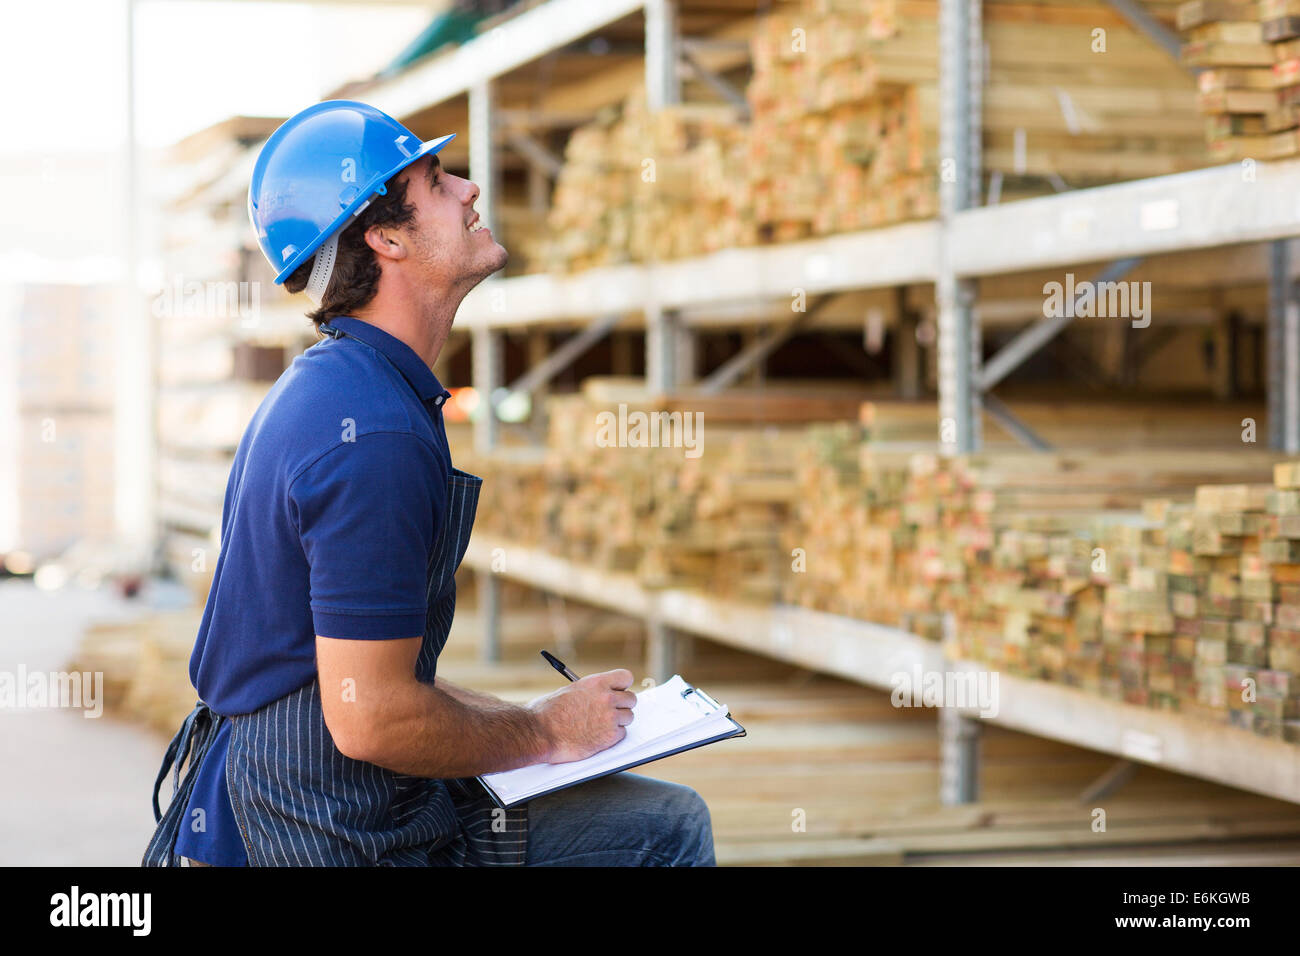 male worker working in warehouse - Stock Image